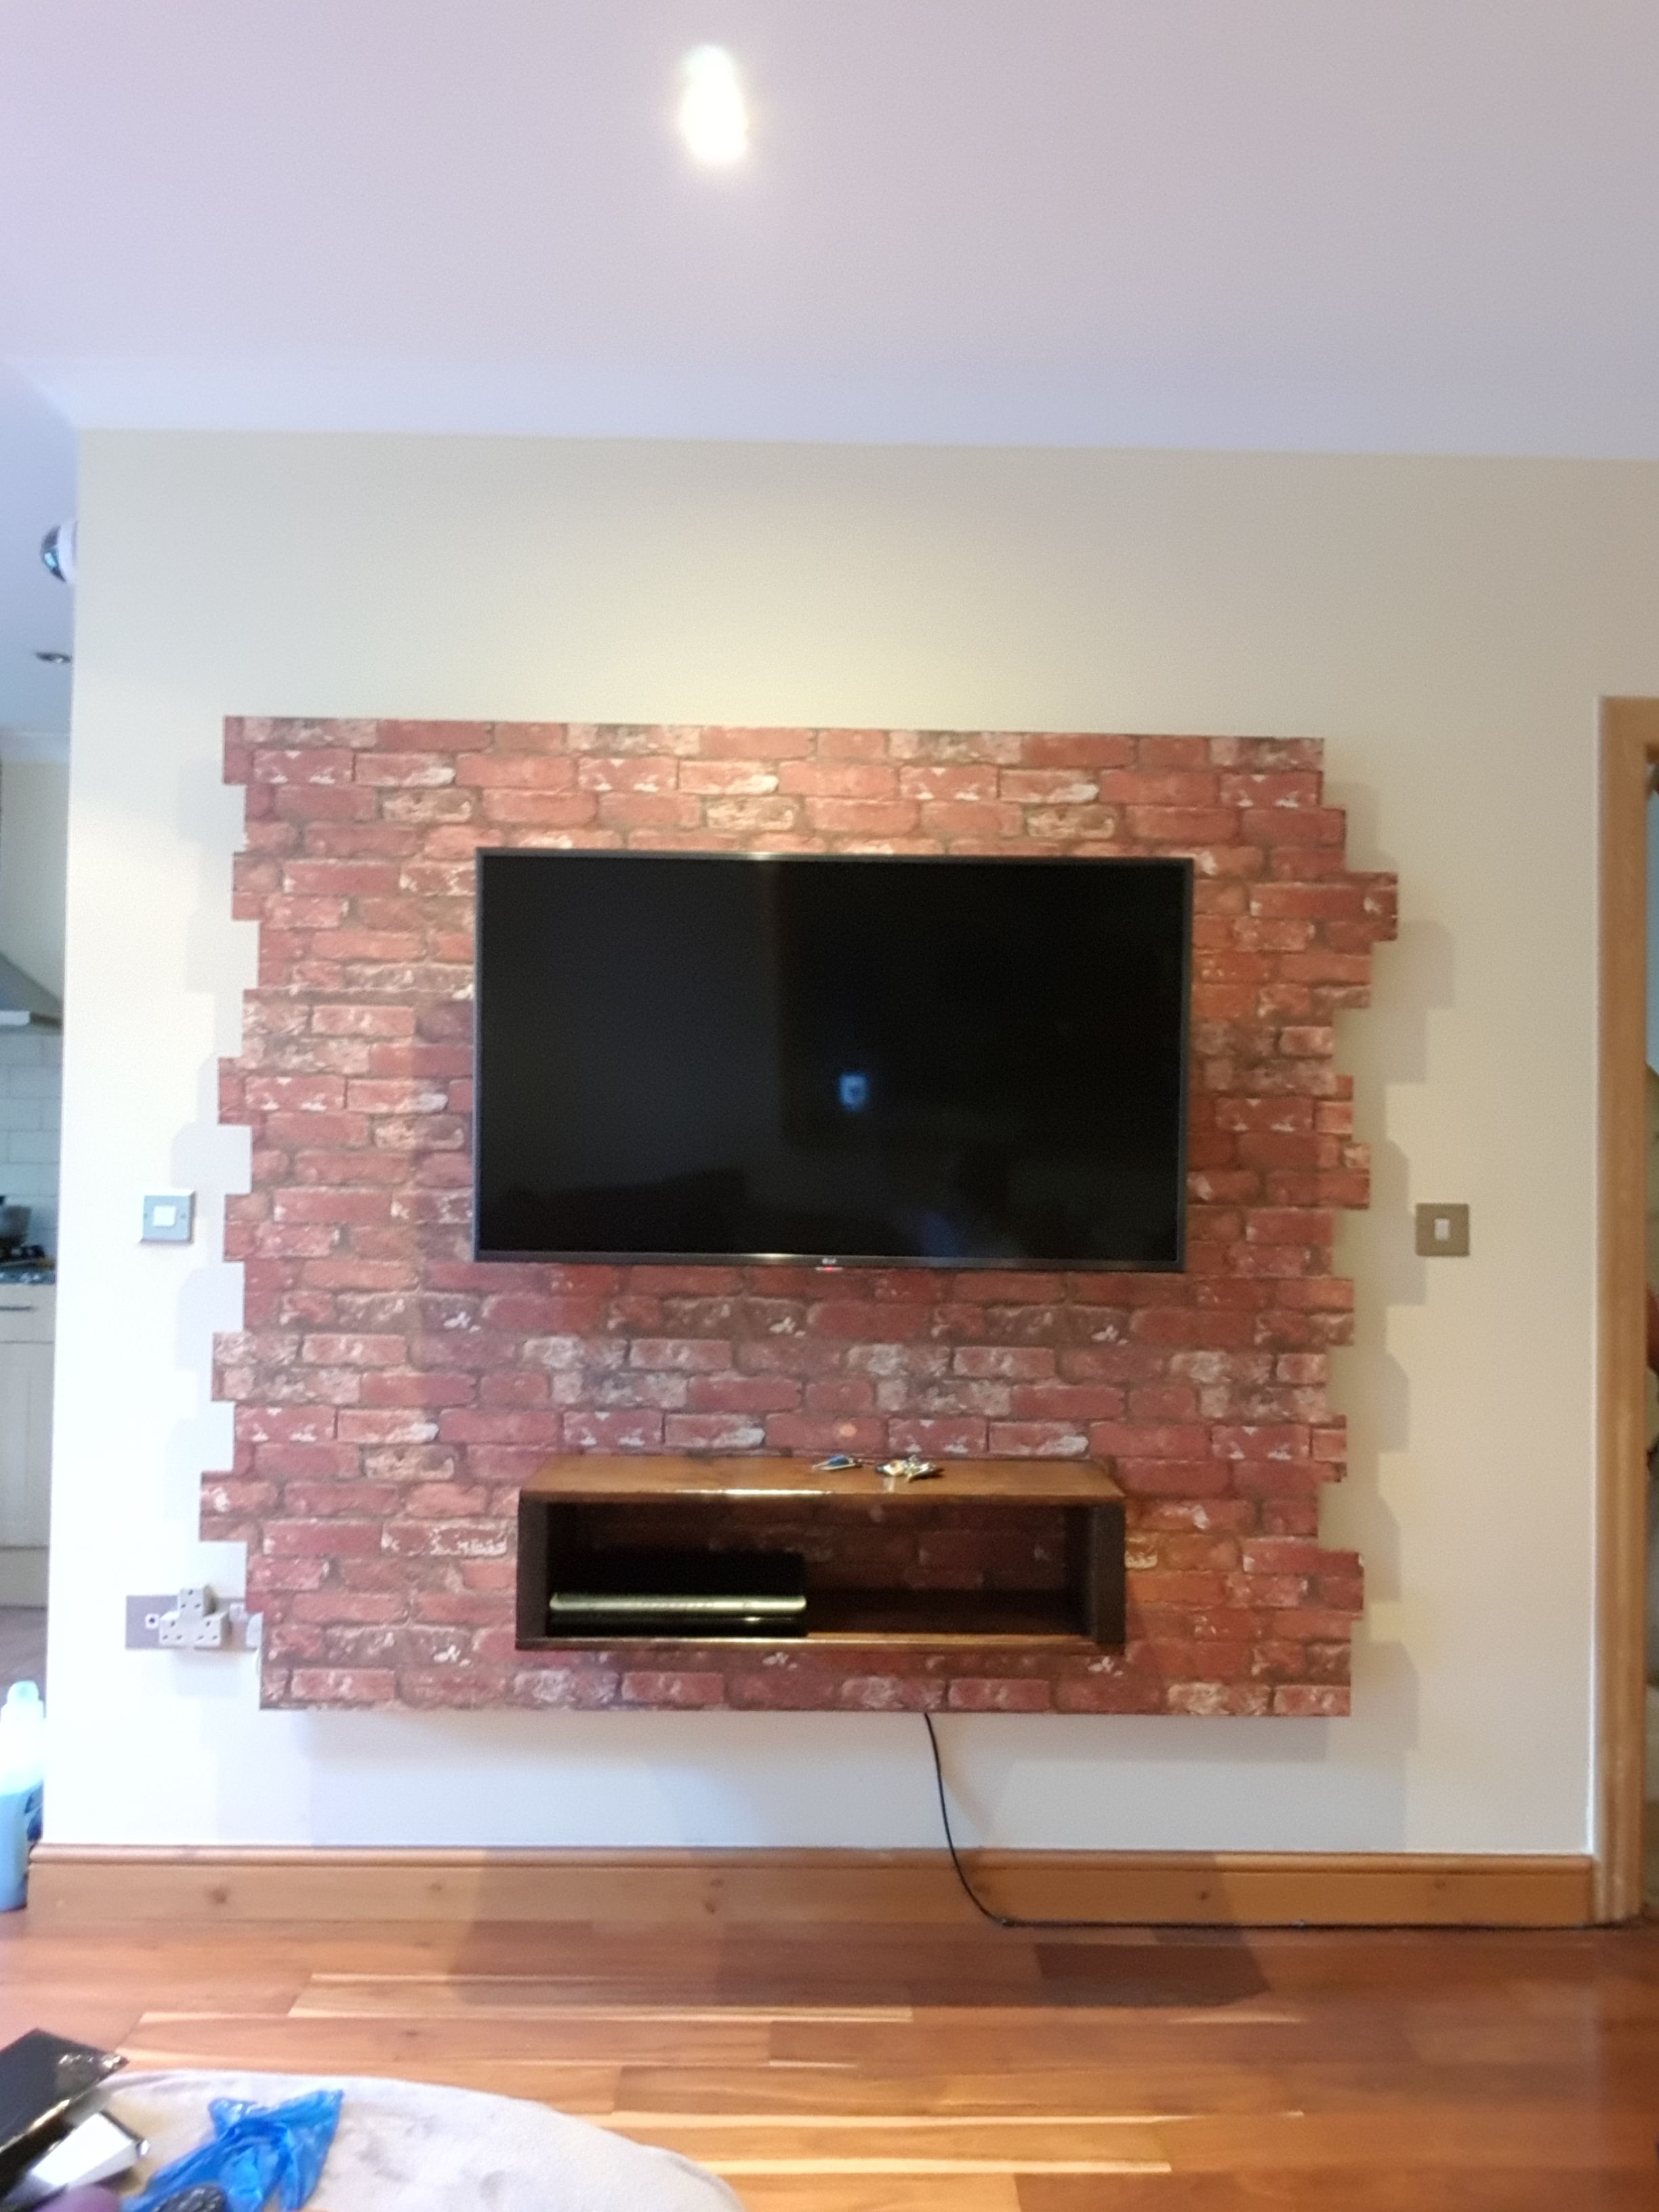 tv wall tv board brick wall design brick wall paper tv shelf tv backboard diy wall ideas. Black Bedroom Furniture Sets. Home Design Ideas